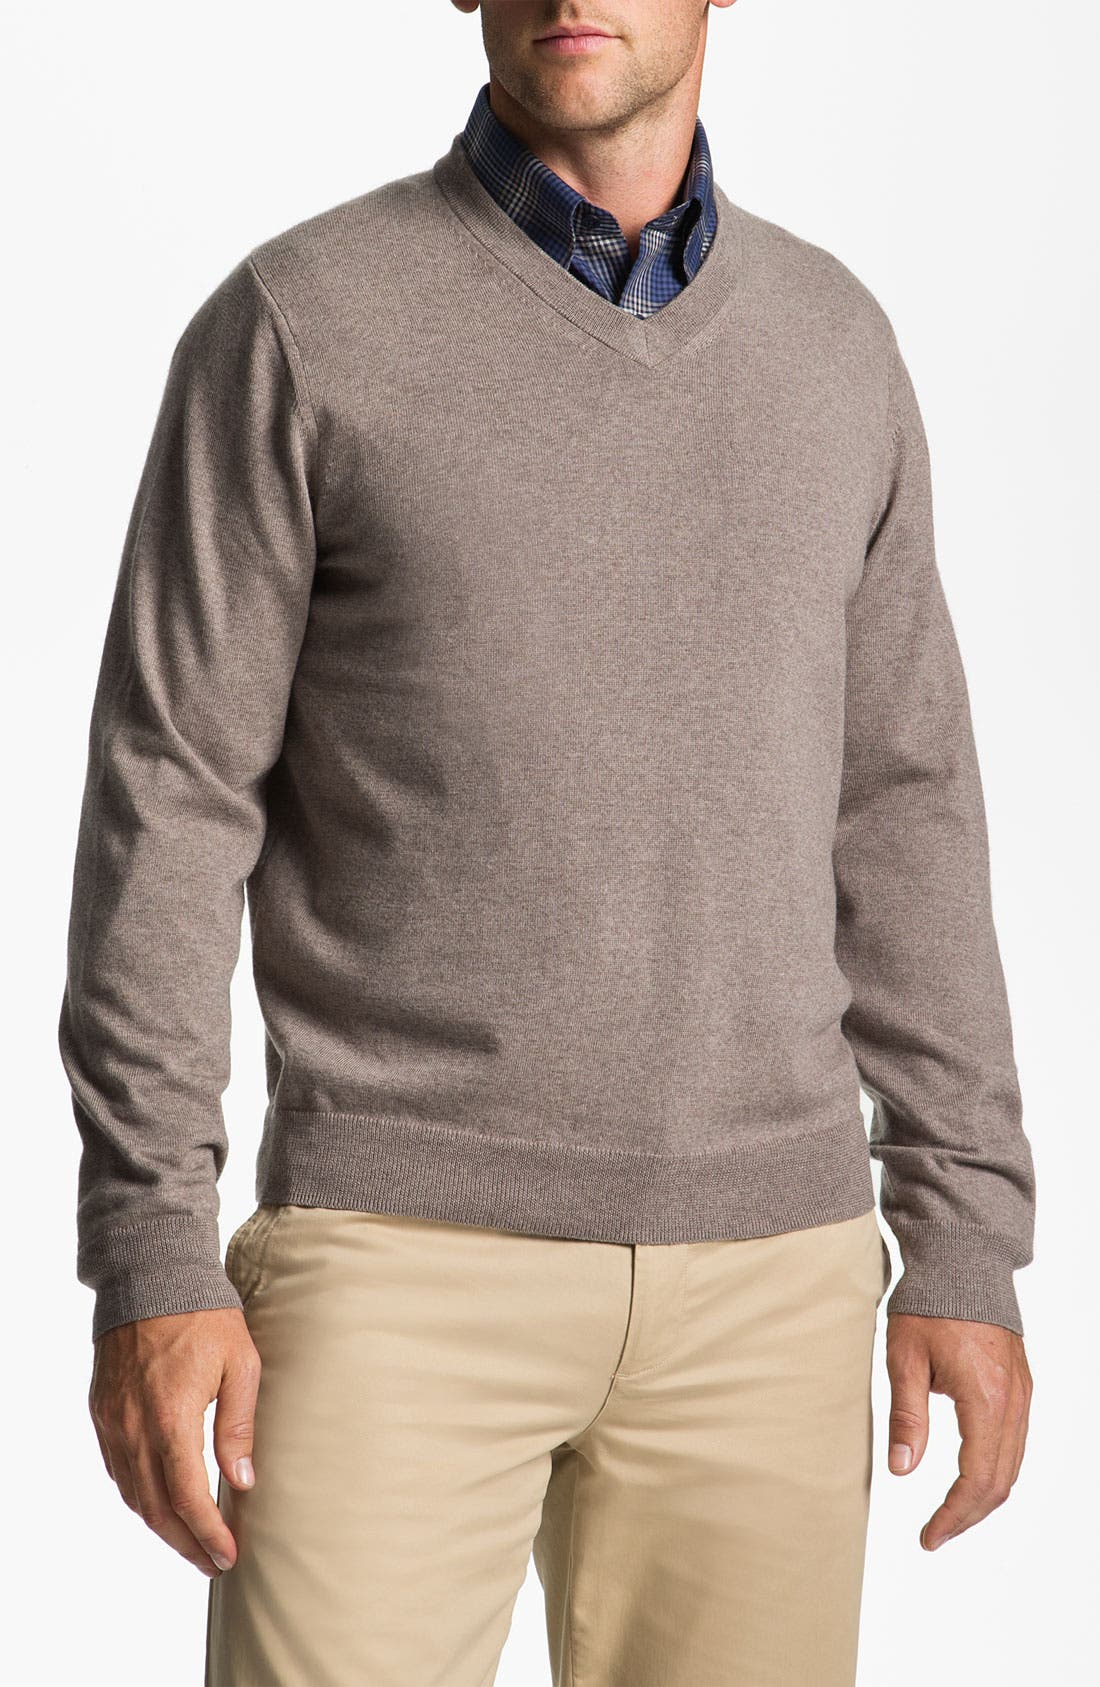 Main Image - Nordstrom V-Neck Merino Wool Sweater